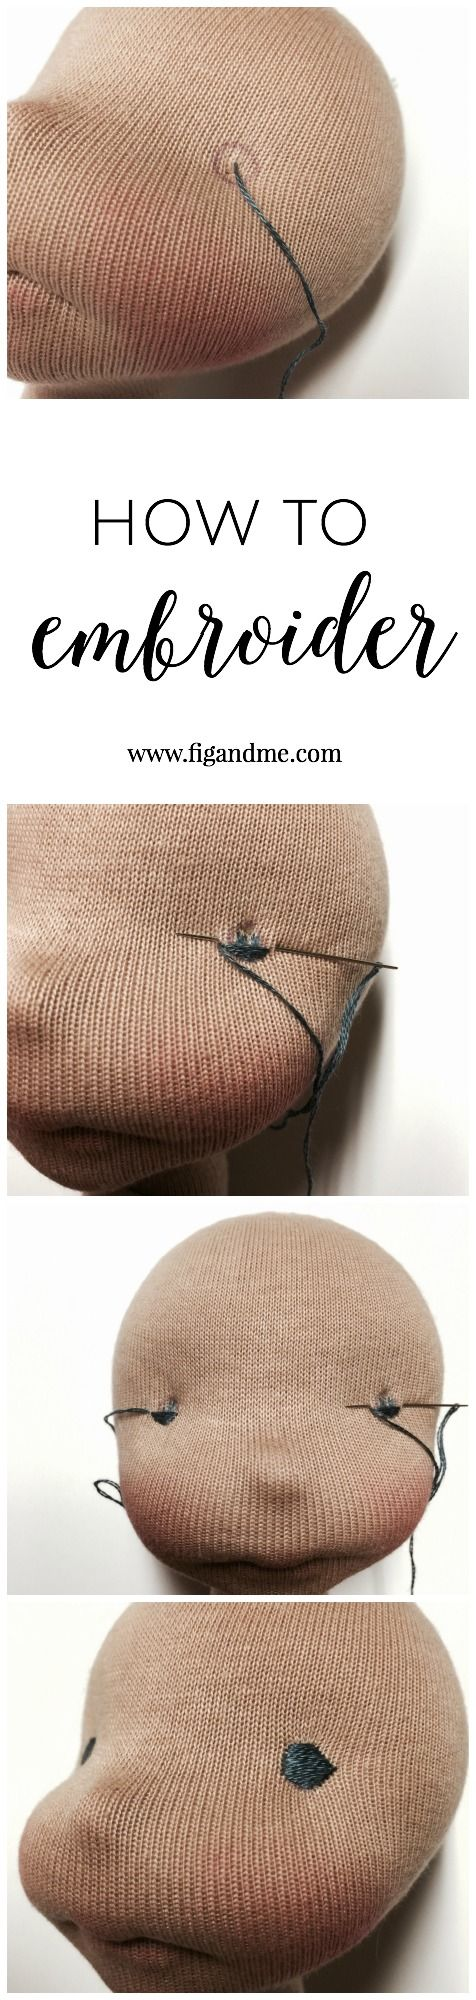 How To Embroider The Eyes On A Wool Sculpted Doll, A Mini Tutorial By Fig